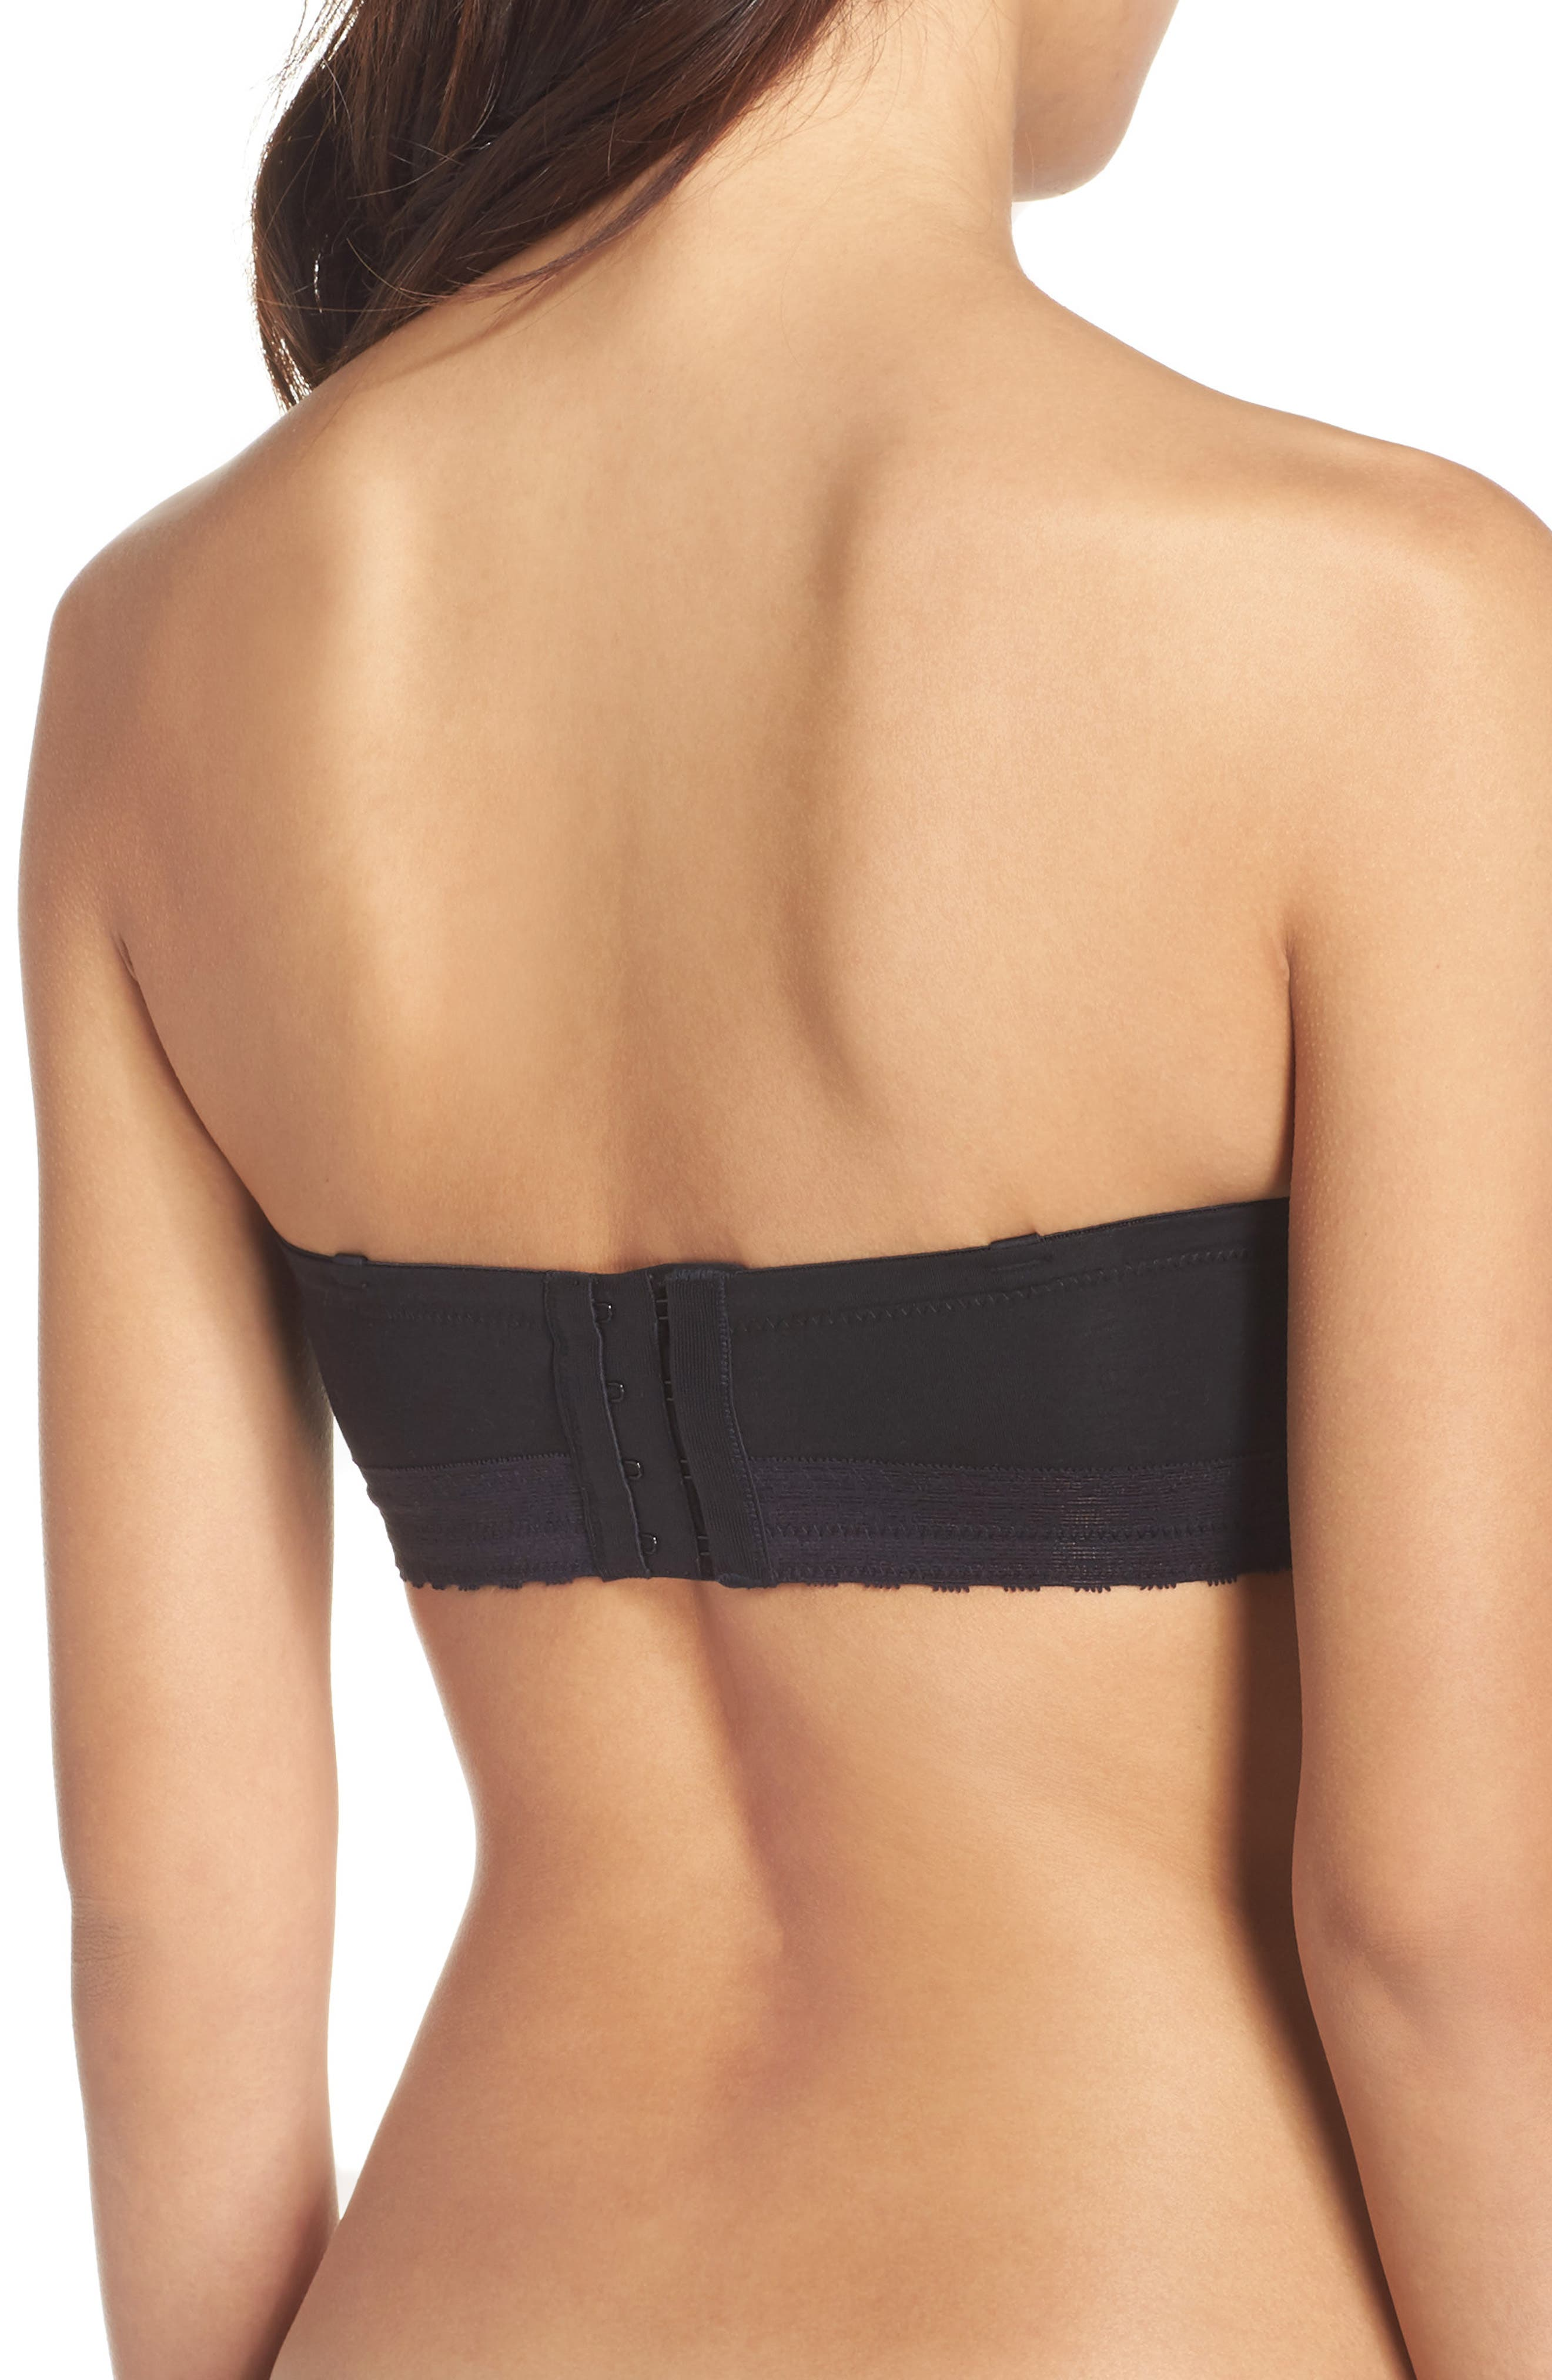 'Truly Smooth' Strapless Underwire Bra,                             Alternate thumbnail 3, color,                             BLACK